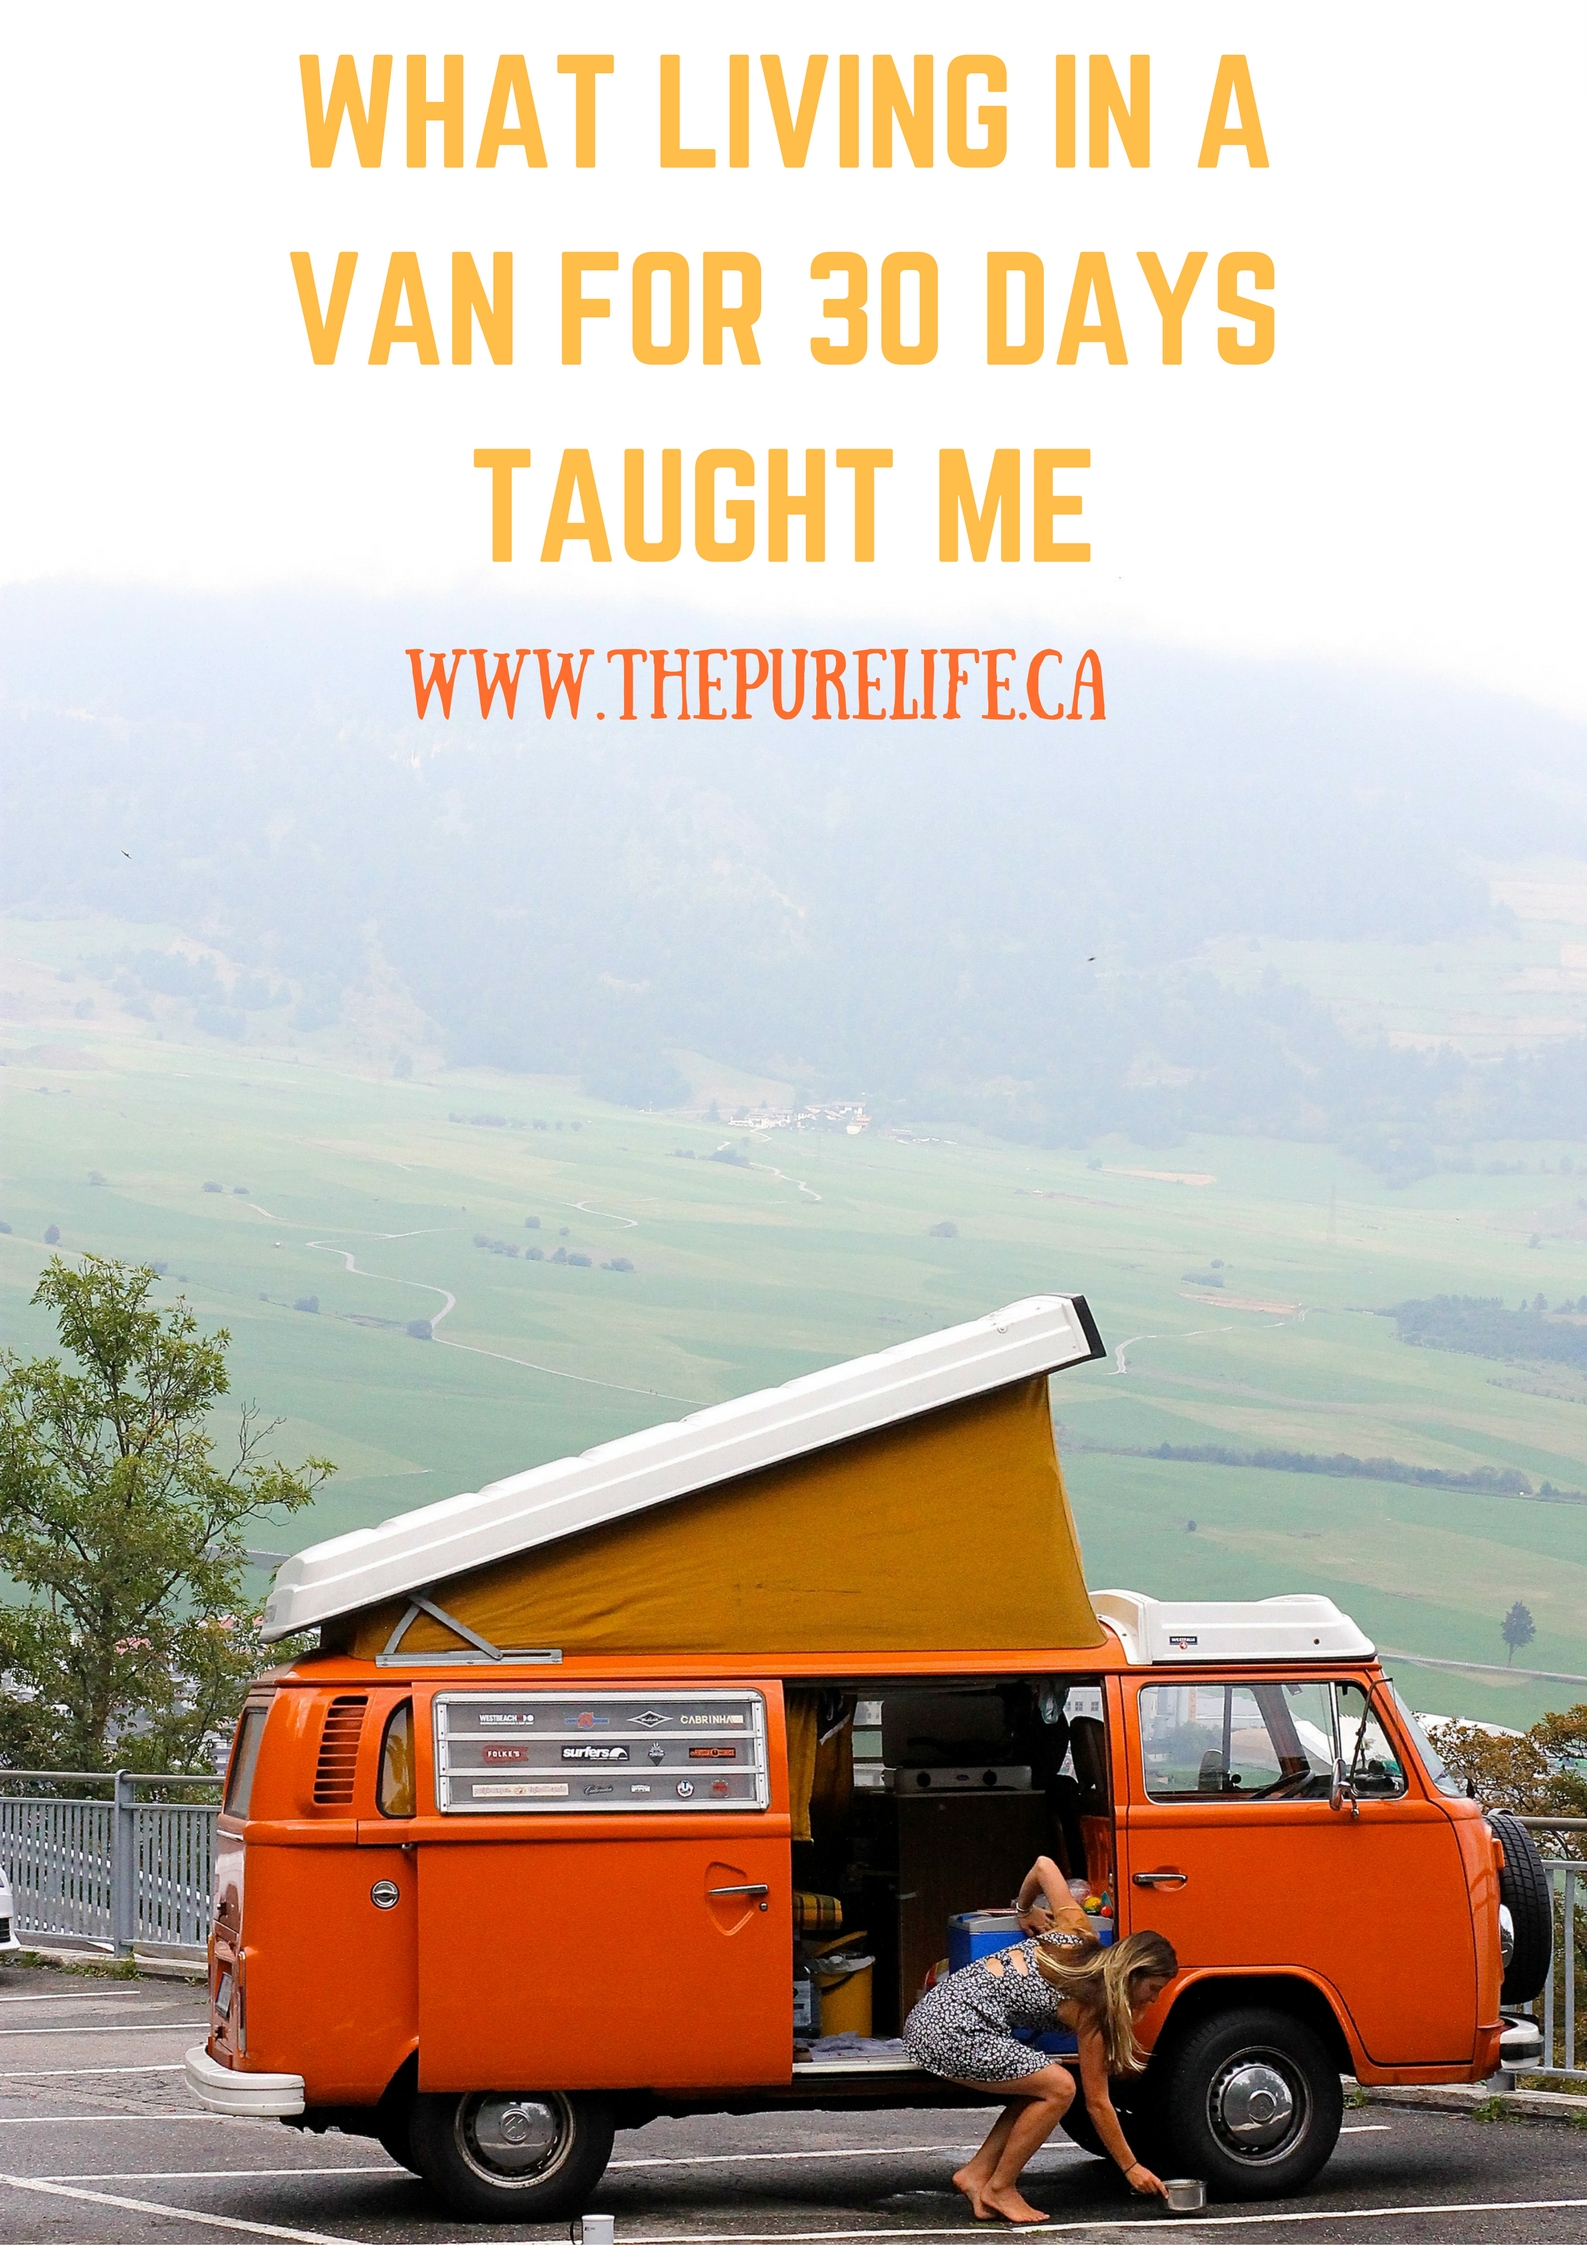 WHAT 30 DAYS IN A VAN TAUGHT ME